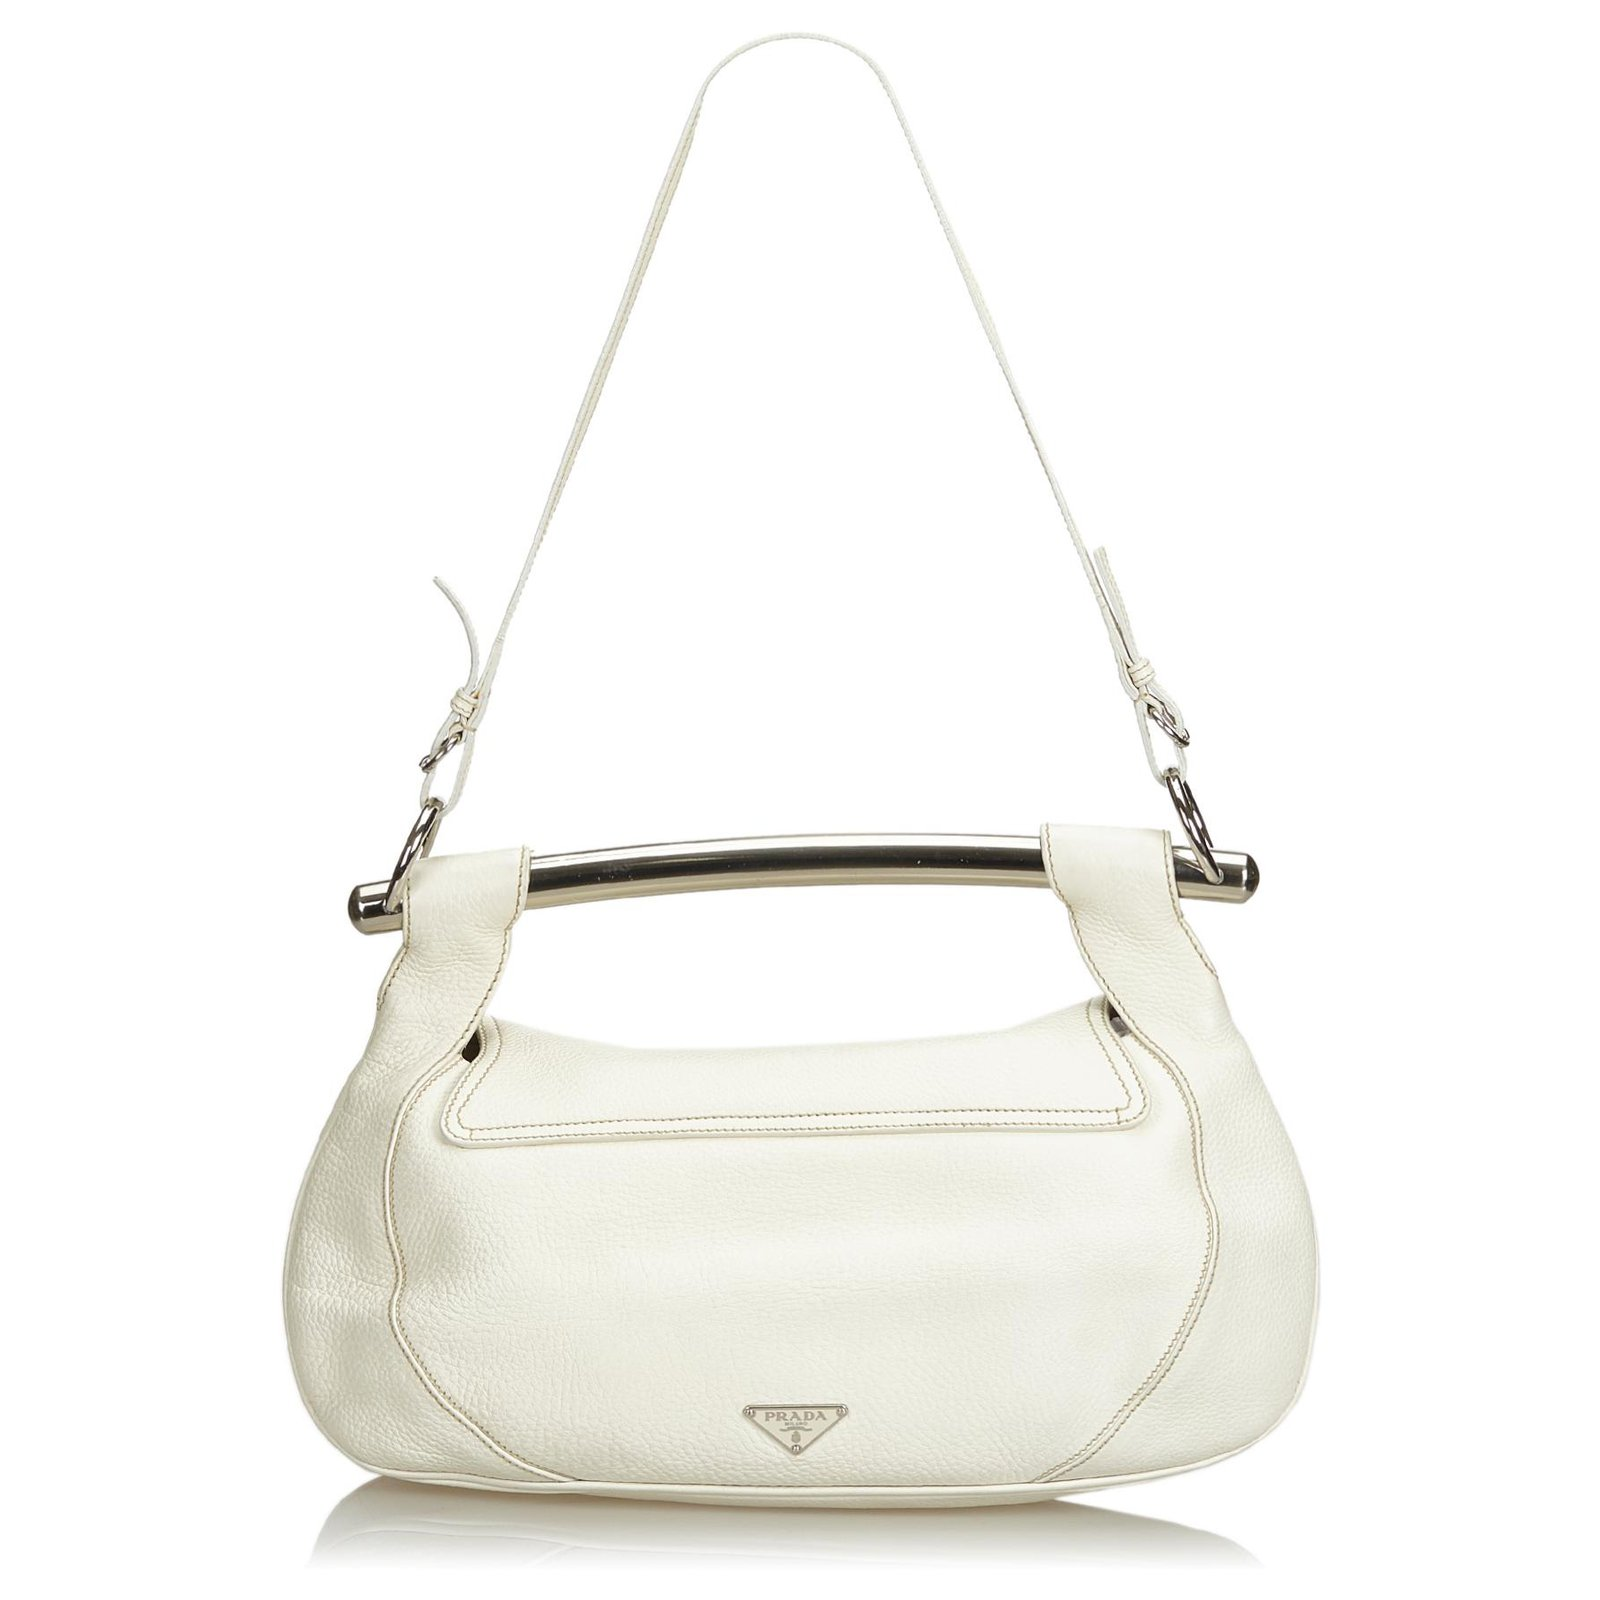 54fc093c7000 Prada Prada White Leather Bar Shoulder Bag Handbags Leather